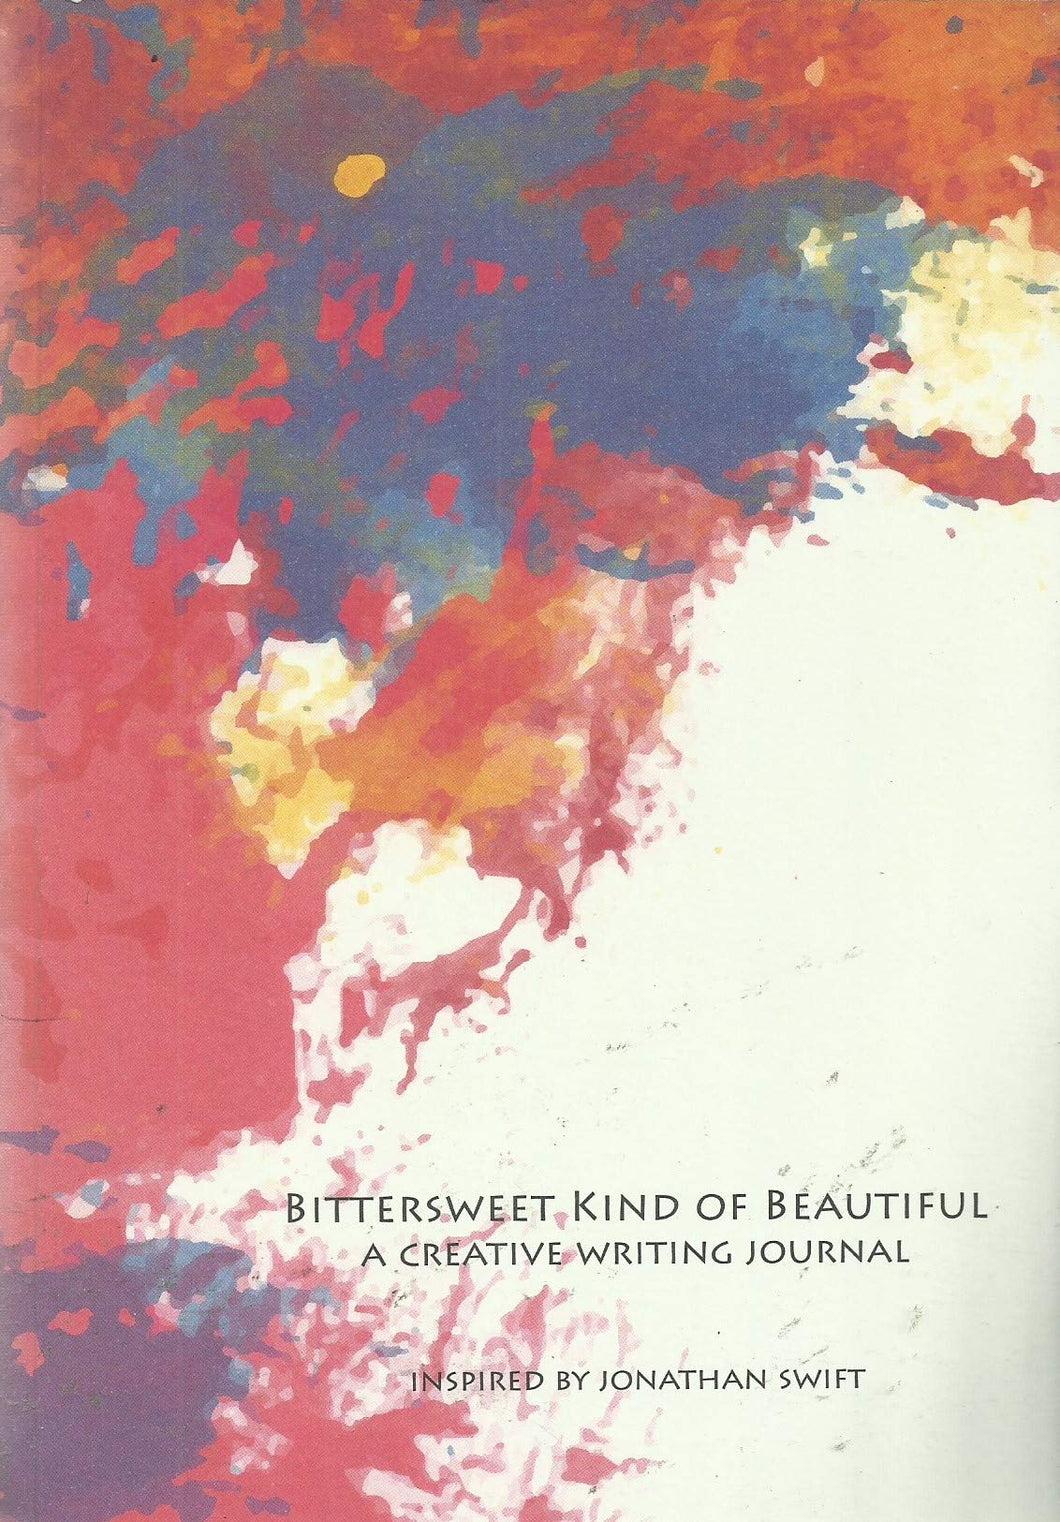 Bittersweet Kind of Beautiful: A Creative Writing Journal - Inspired by Jonathan Swift